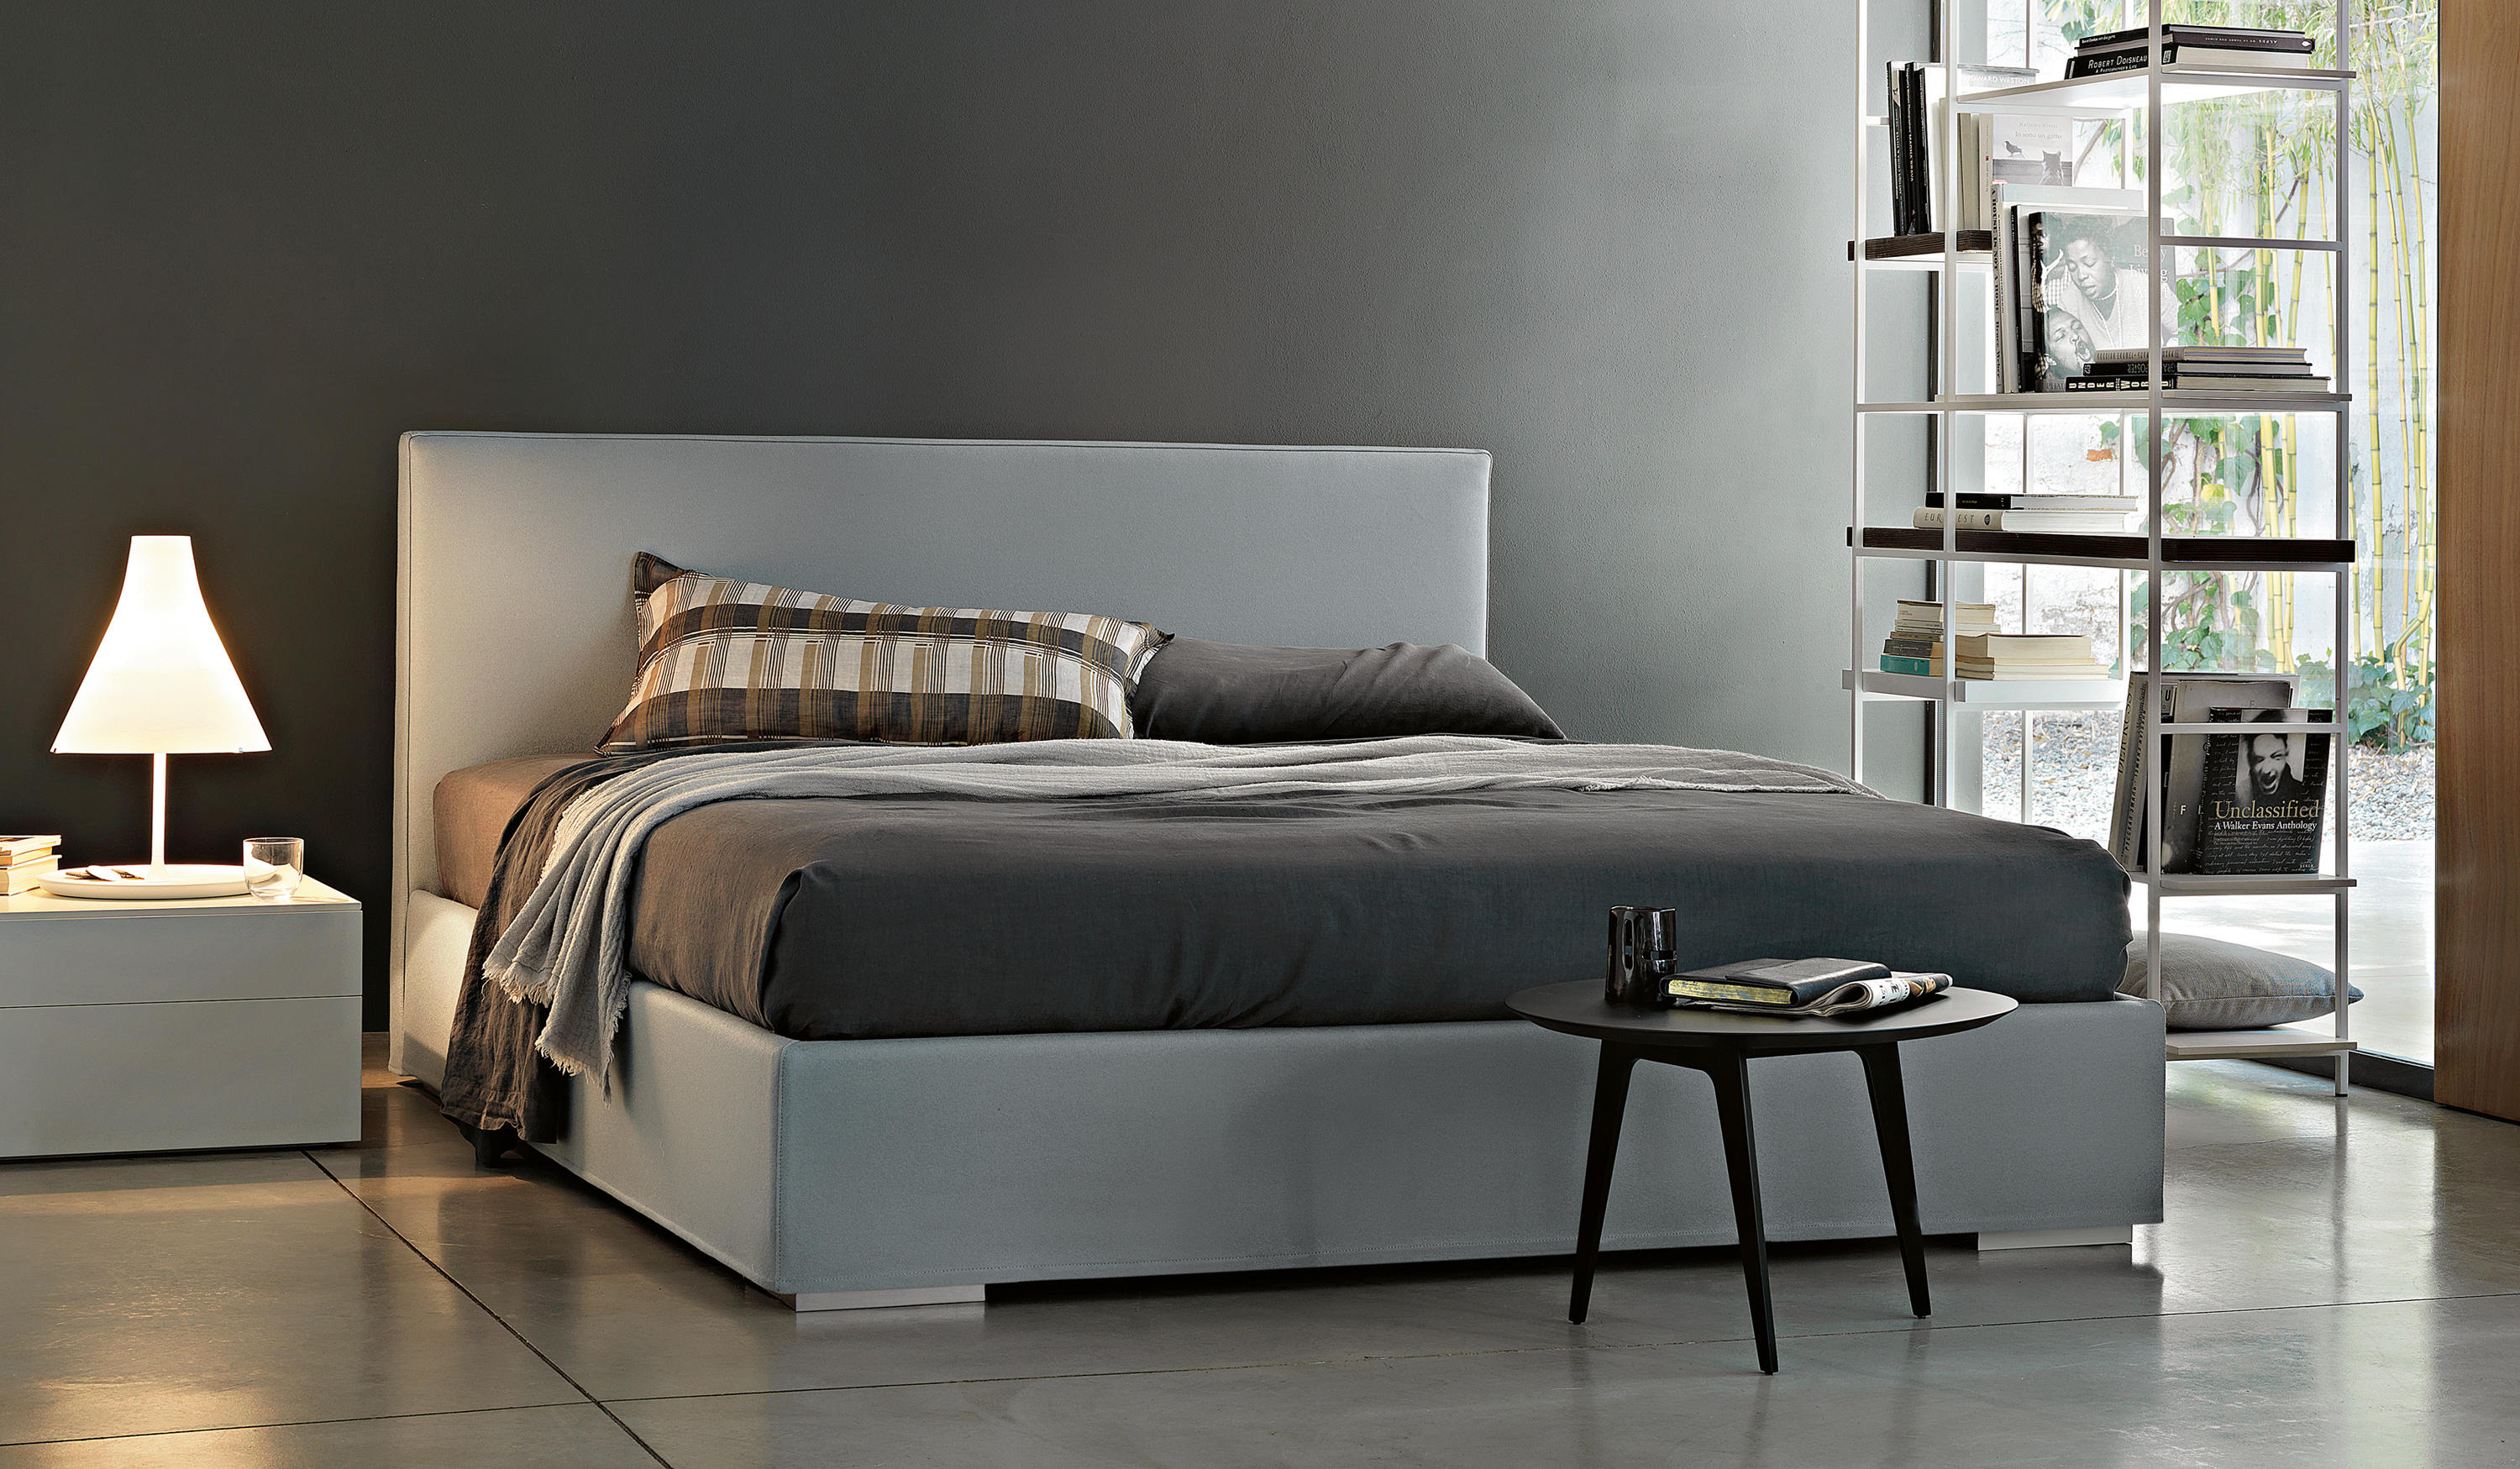 Double bed furniture design - Camille Double Beds Lema